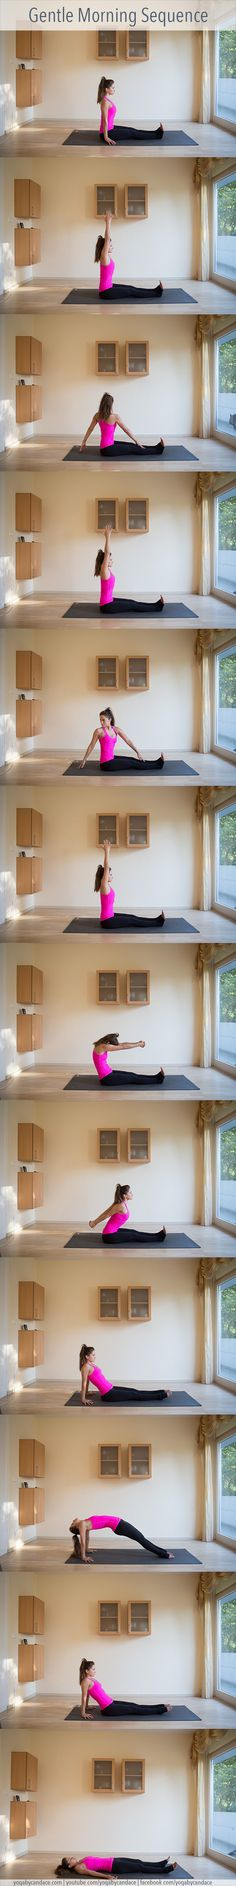 Pin it! A gentle morning yoga sequence you can do from home.